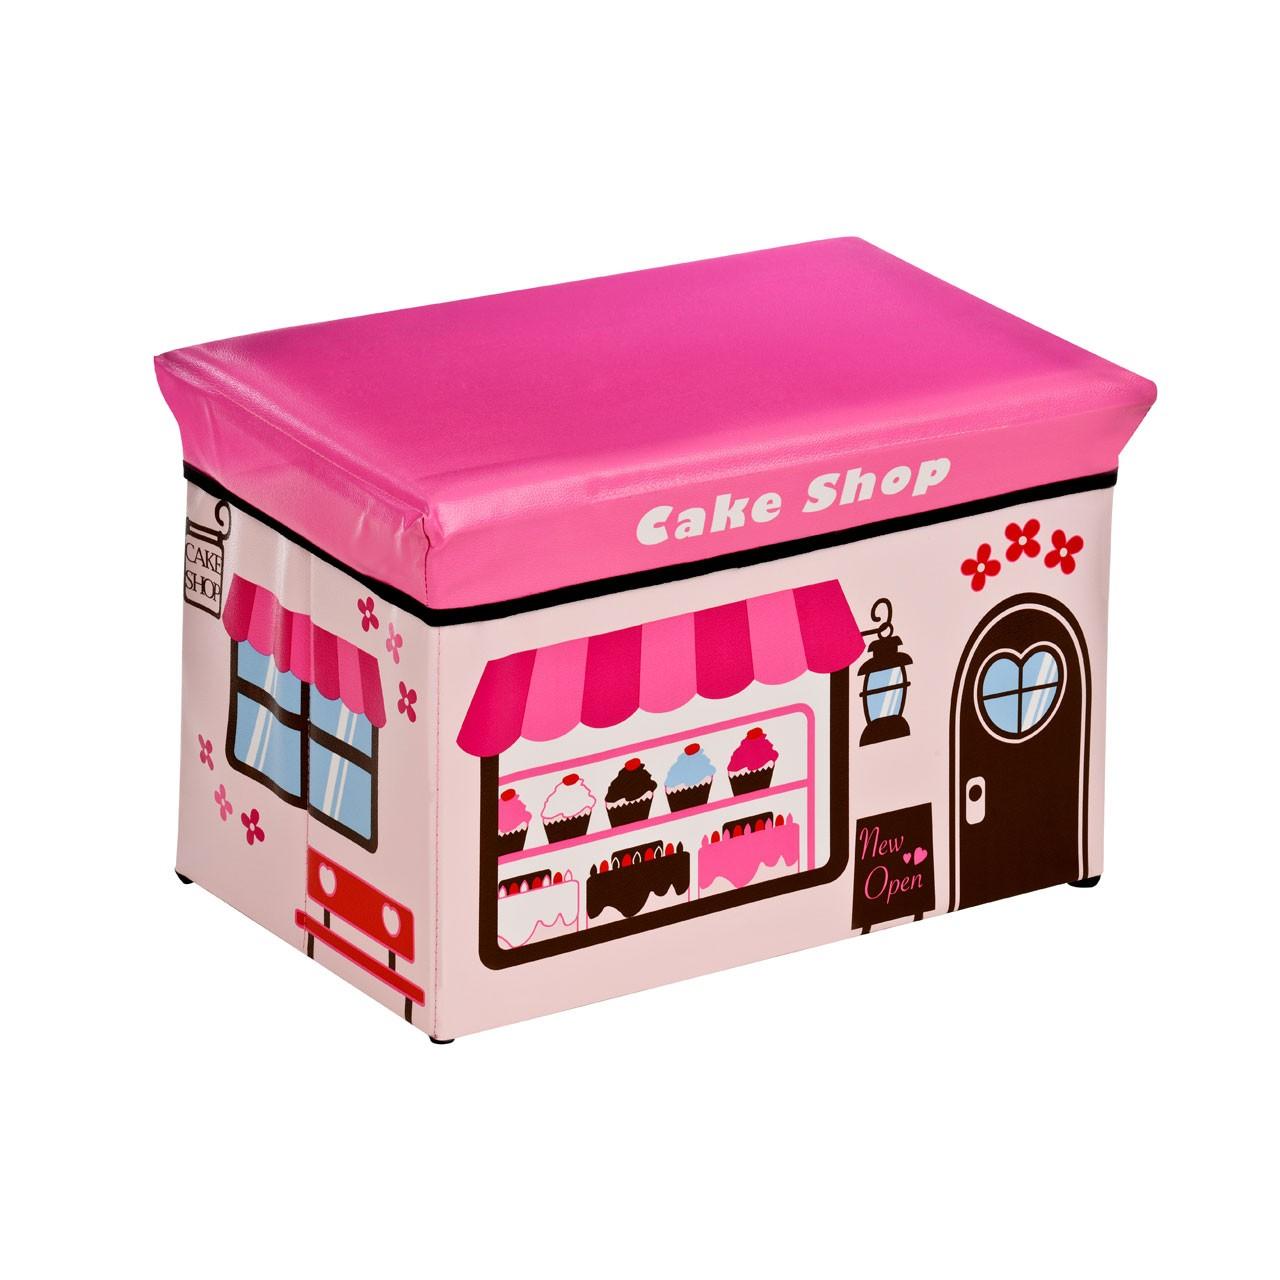 Cake Shop Design Children's Storage Box/Seat, Pink